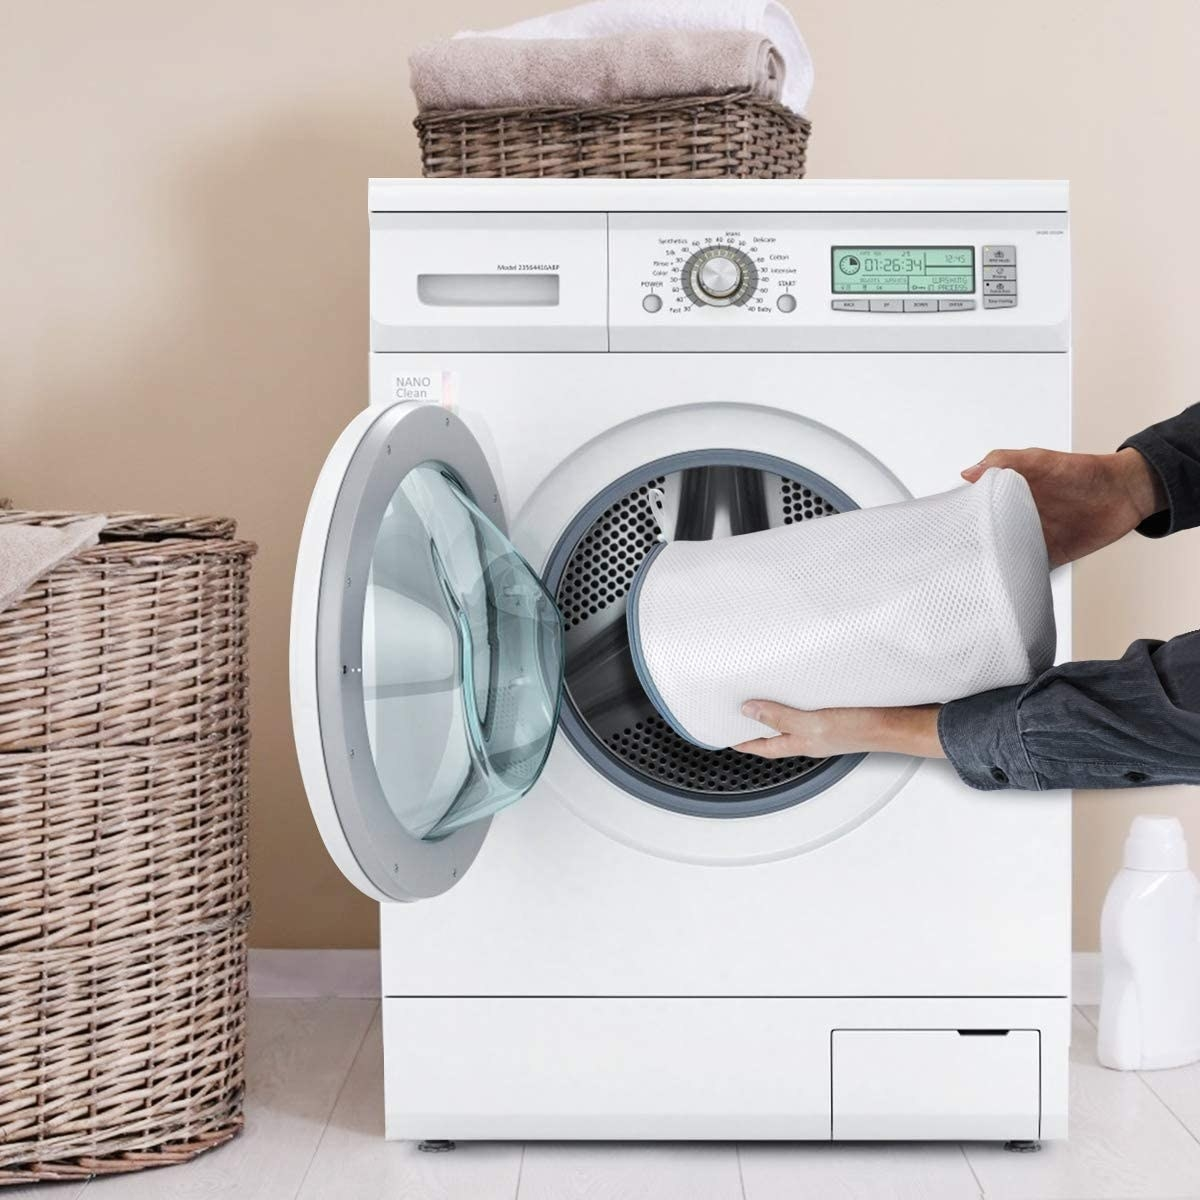 A person putting the mesh bag filled with shoes into a washing machine